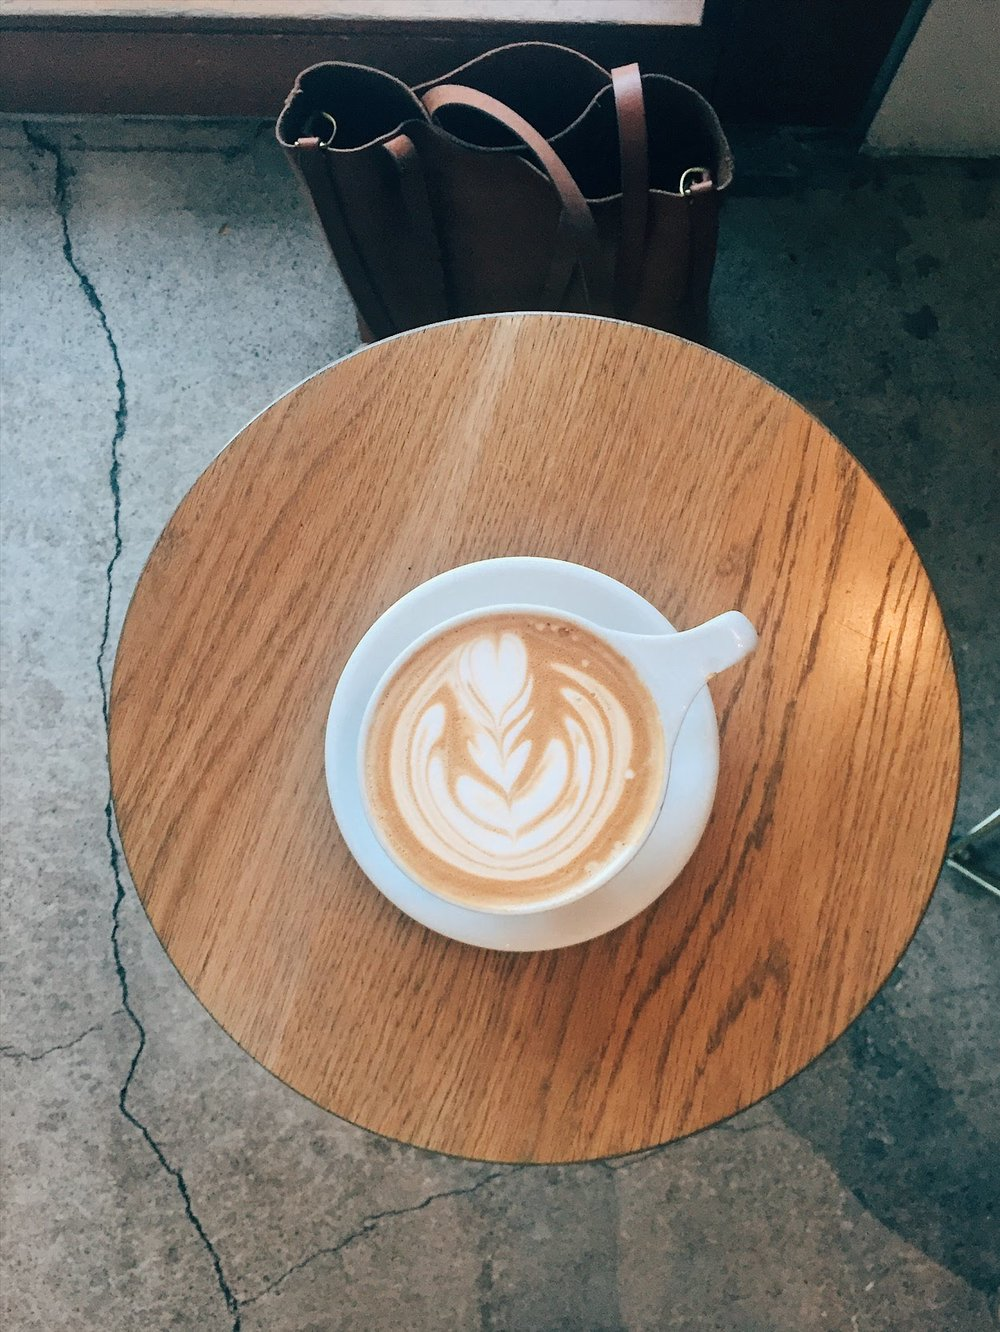 latte art at kit coffee in newport beach, california